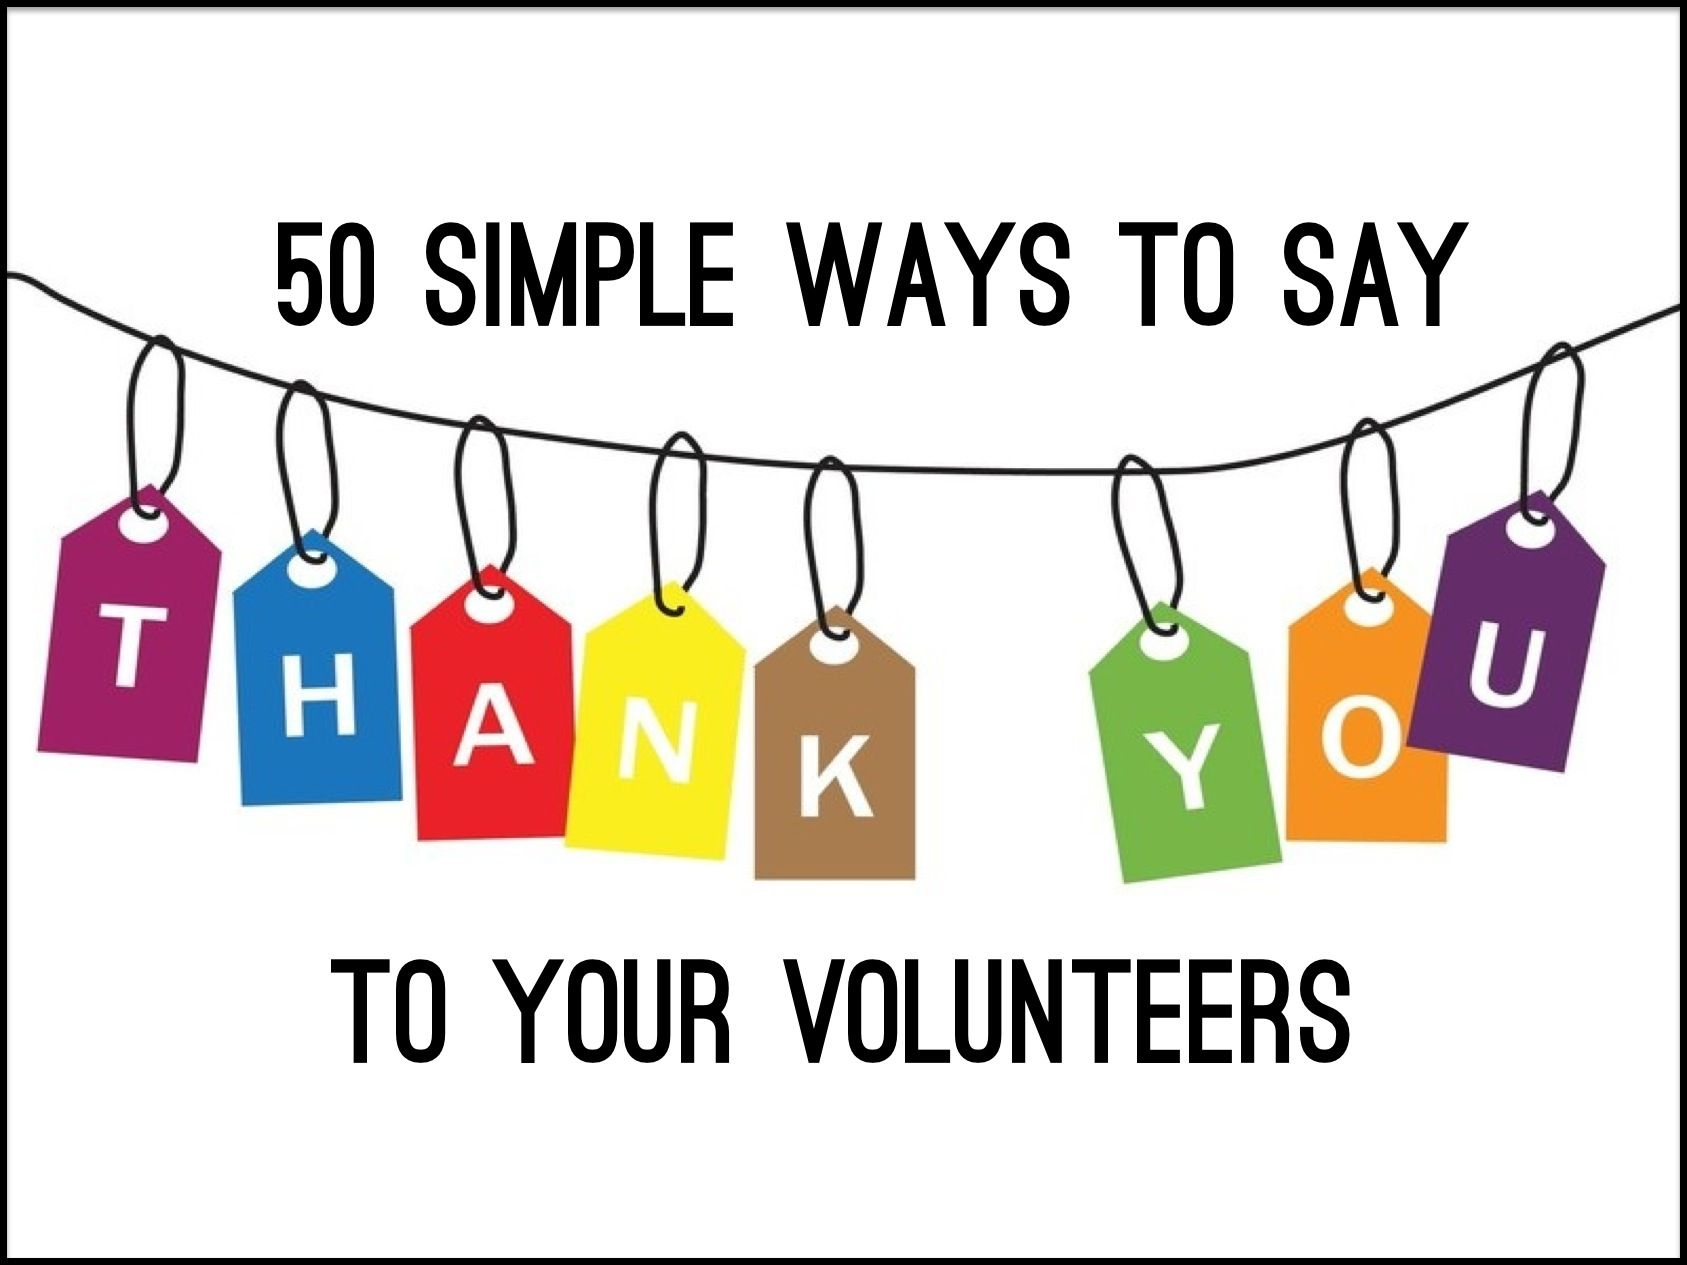 50 simple ways to say thank you to your volunteers